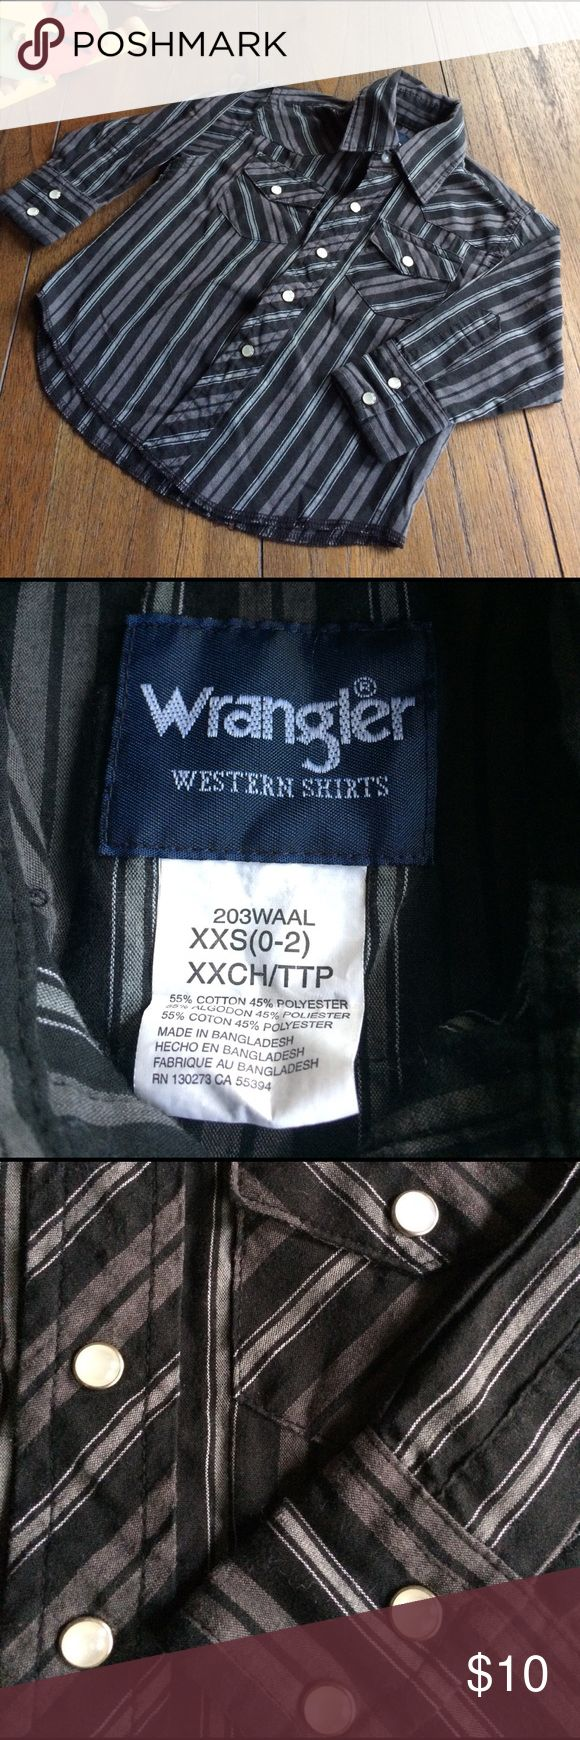 Wrangler Western Shirt Gently used Wrangler Western Snap Front Shirt. Button at collar. Pearlized snaps down front, on snap flap pockets & sleeve cuffs. Black, charcoal and grey stripe pattern. Size XXS (0-2) per tag. When next to 24 month it is same size. Wrangler Shirts & Tops Button Down Shirts